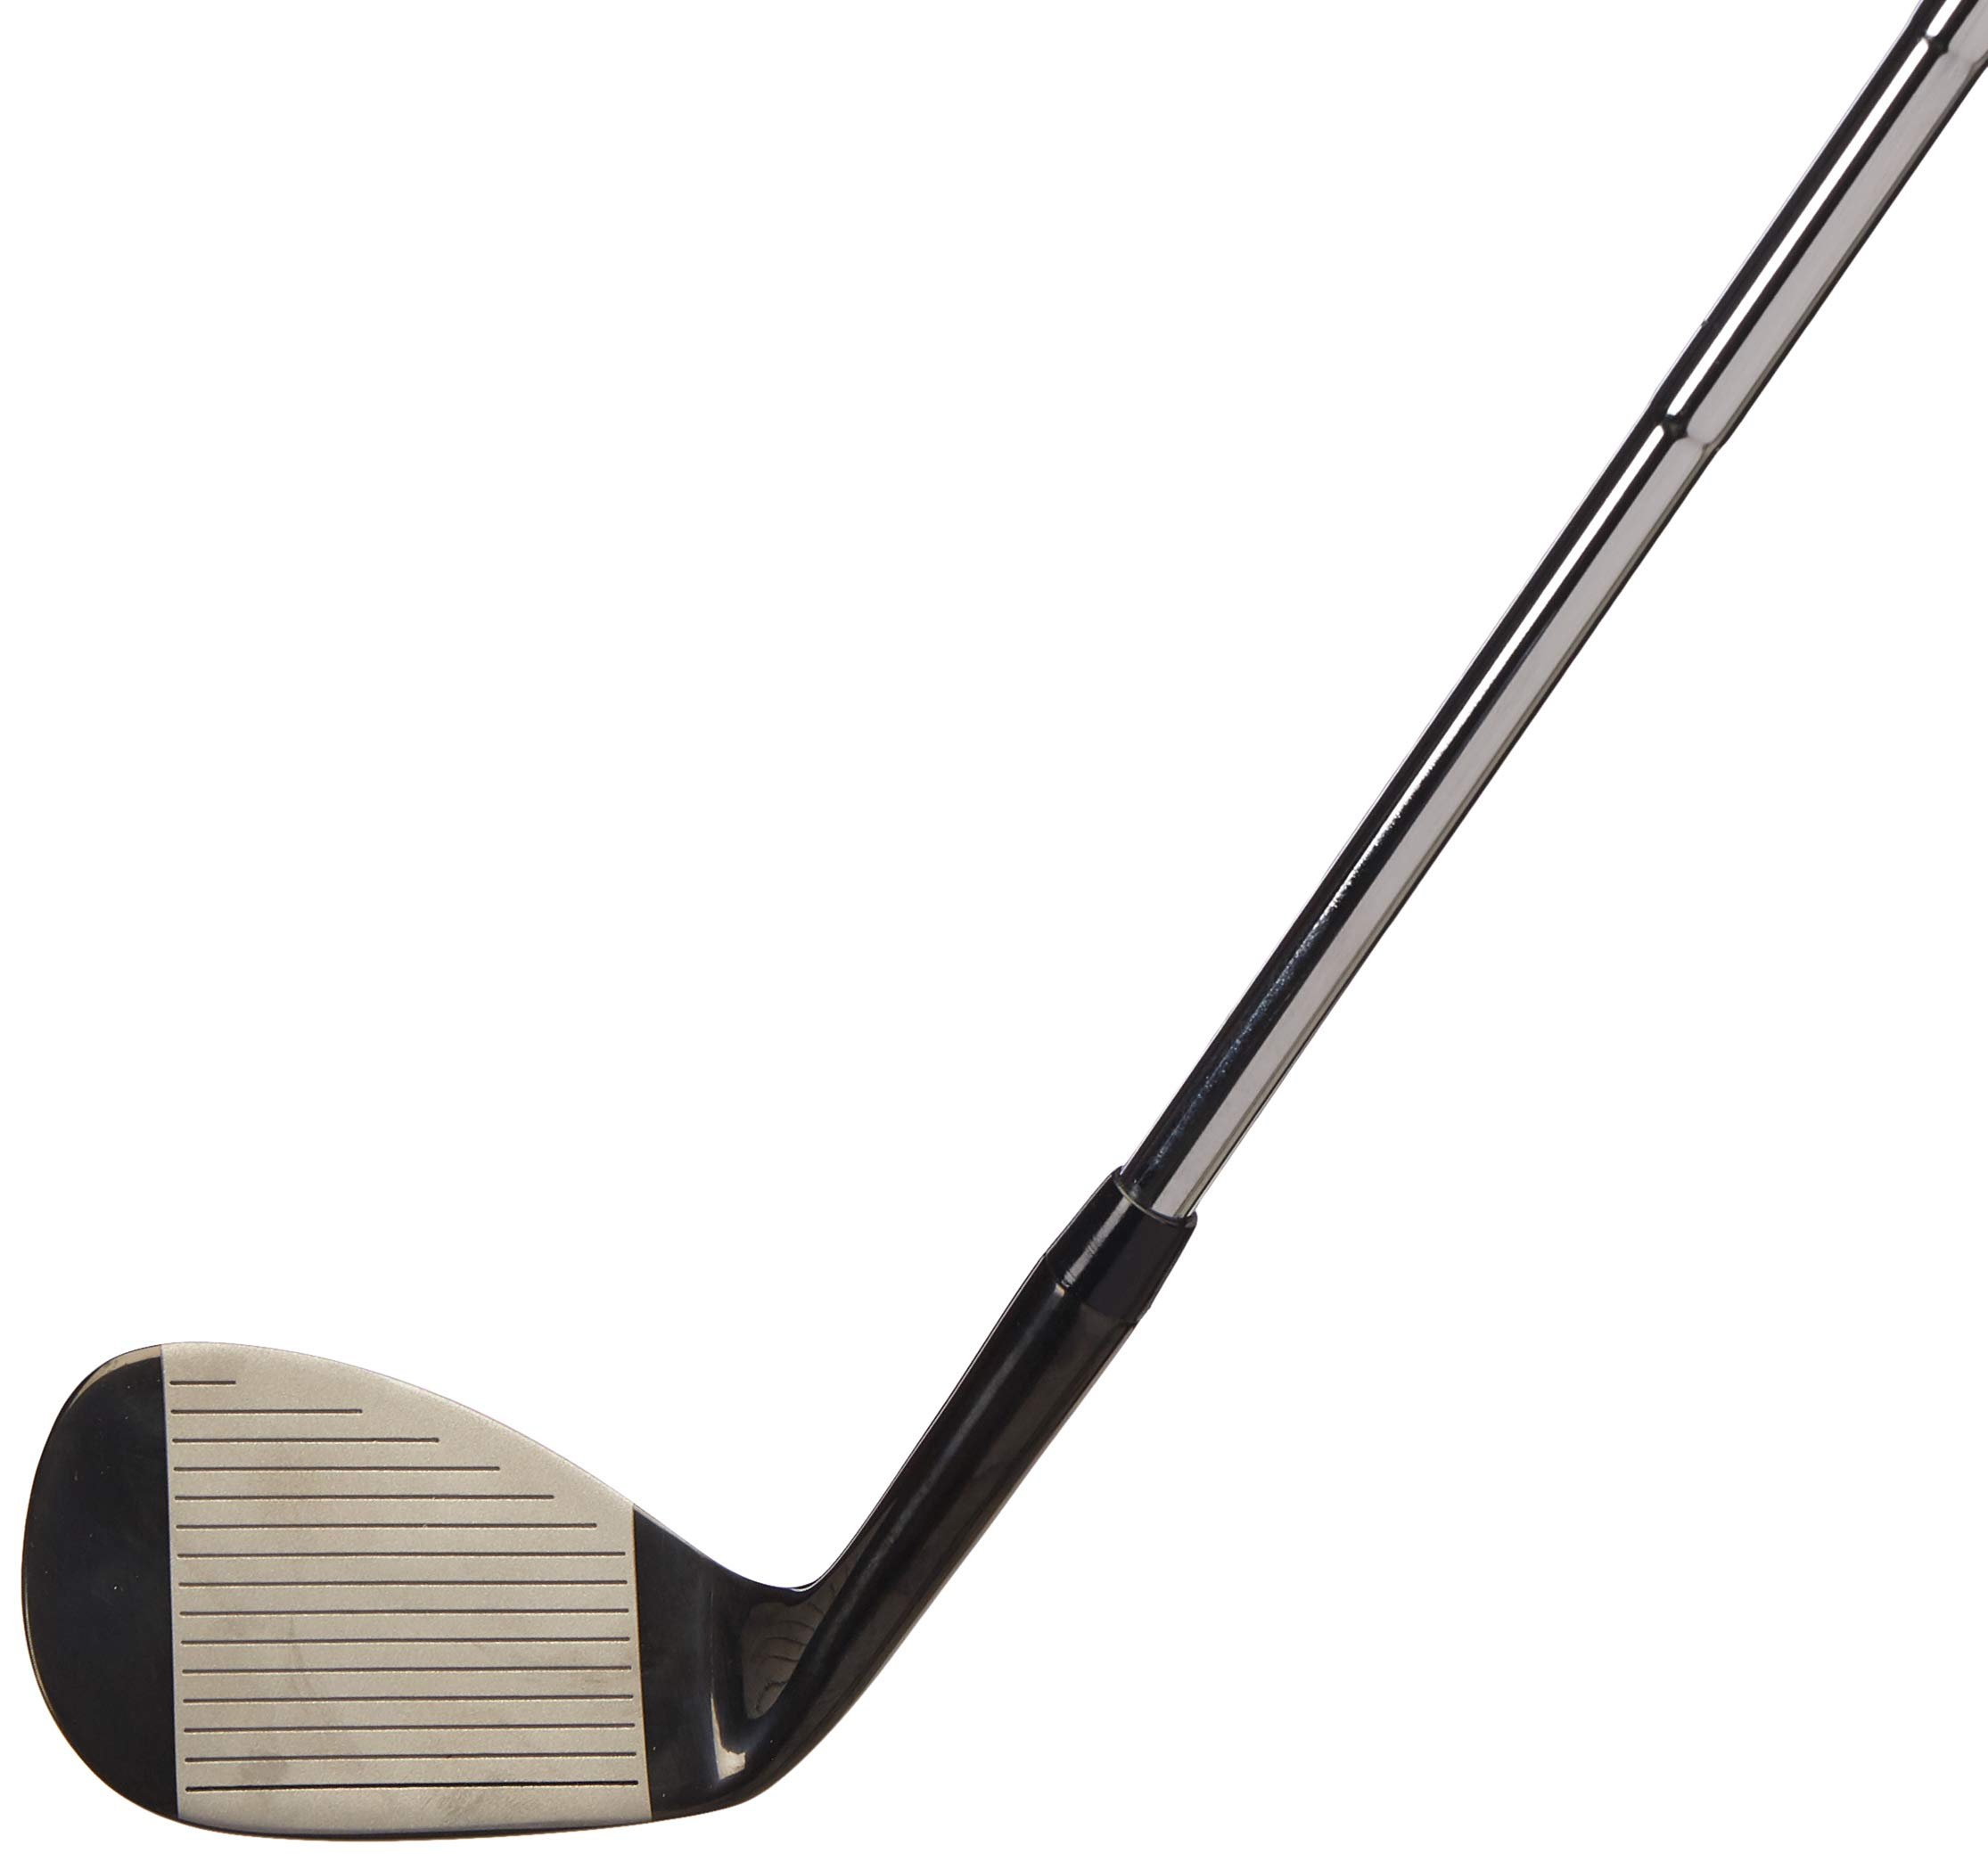 Wilson Staff Men's Harmonized Black Chrome Golf Wedge, Right Hand, 52.0-Degree by Wilson